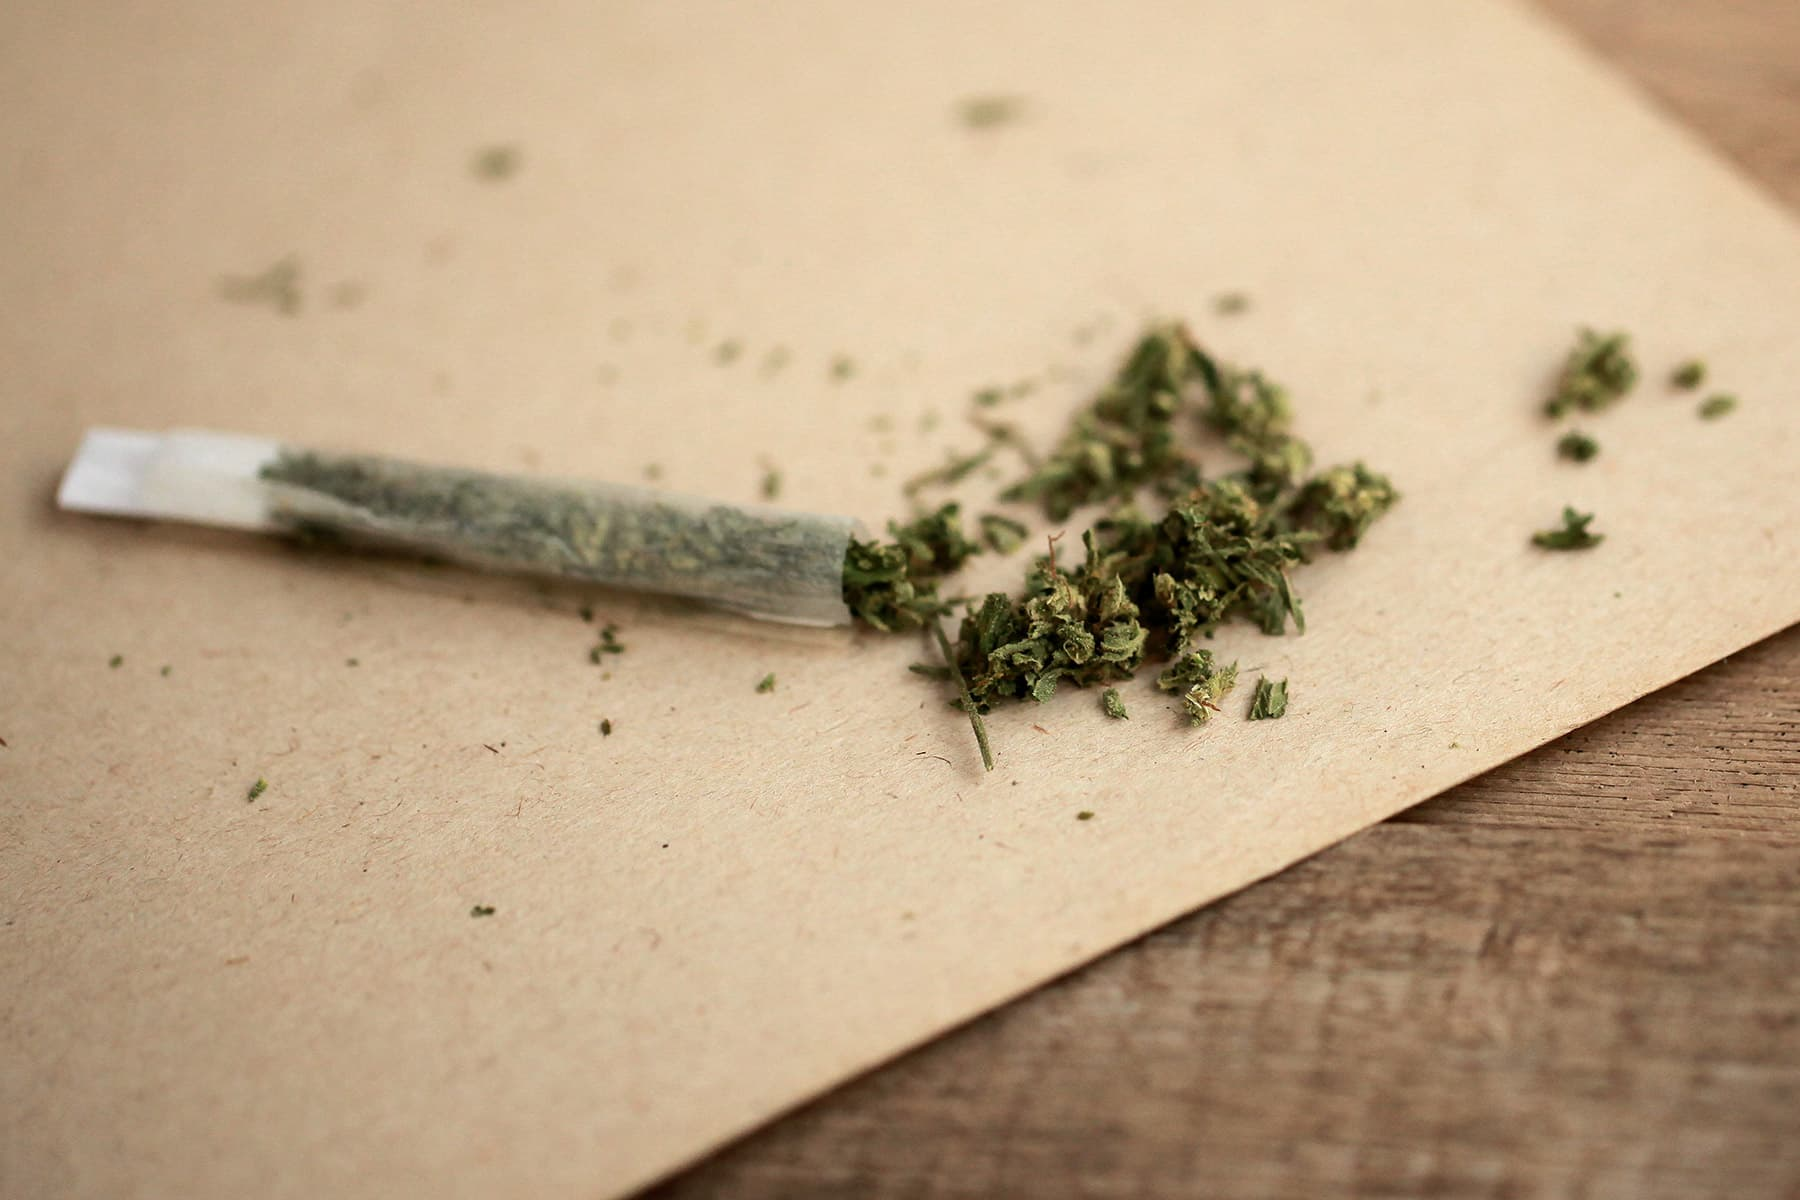 photo of joint